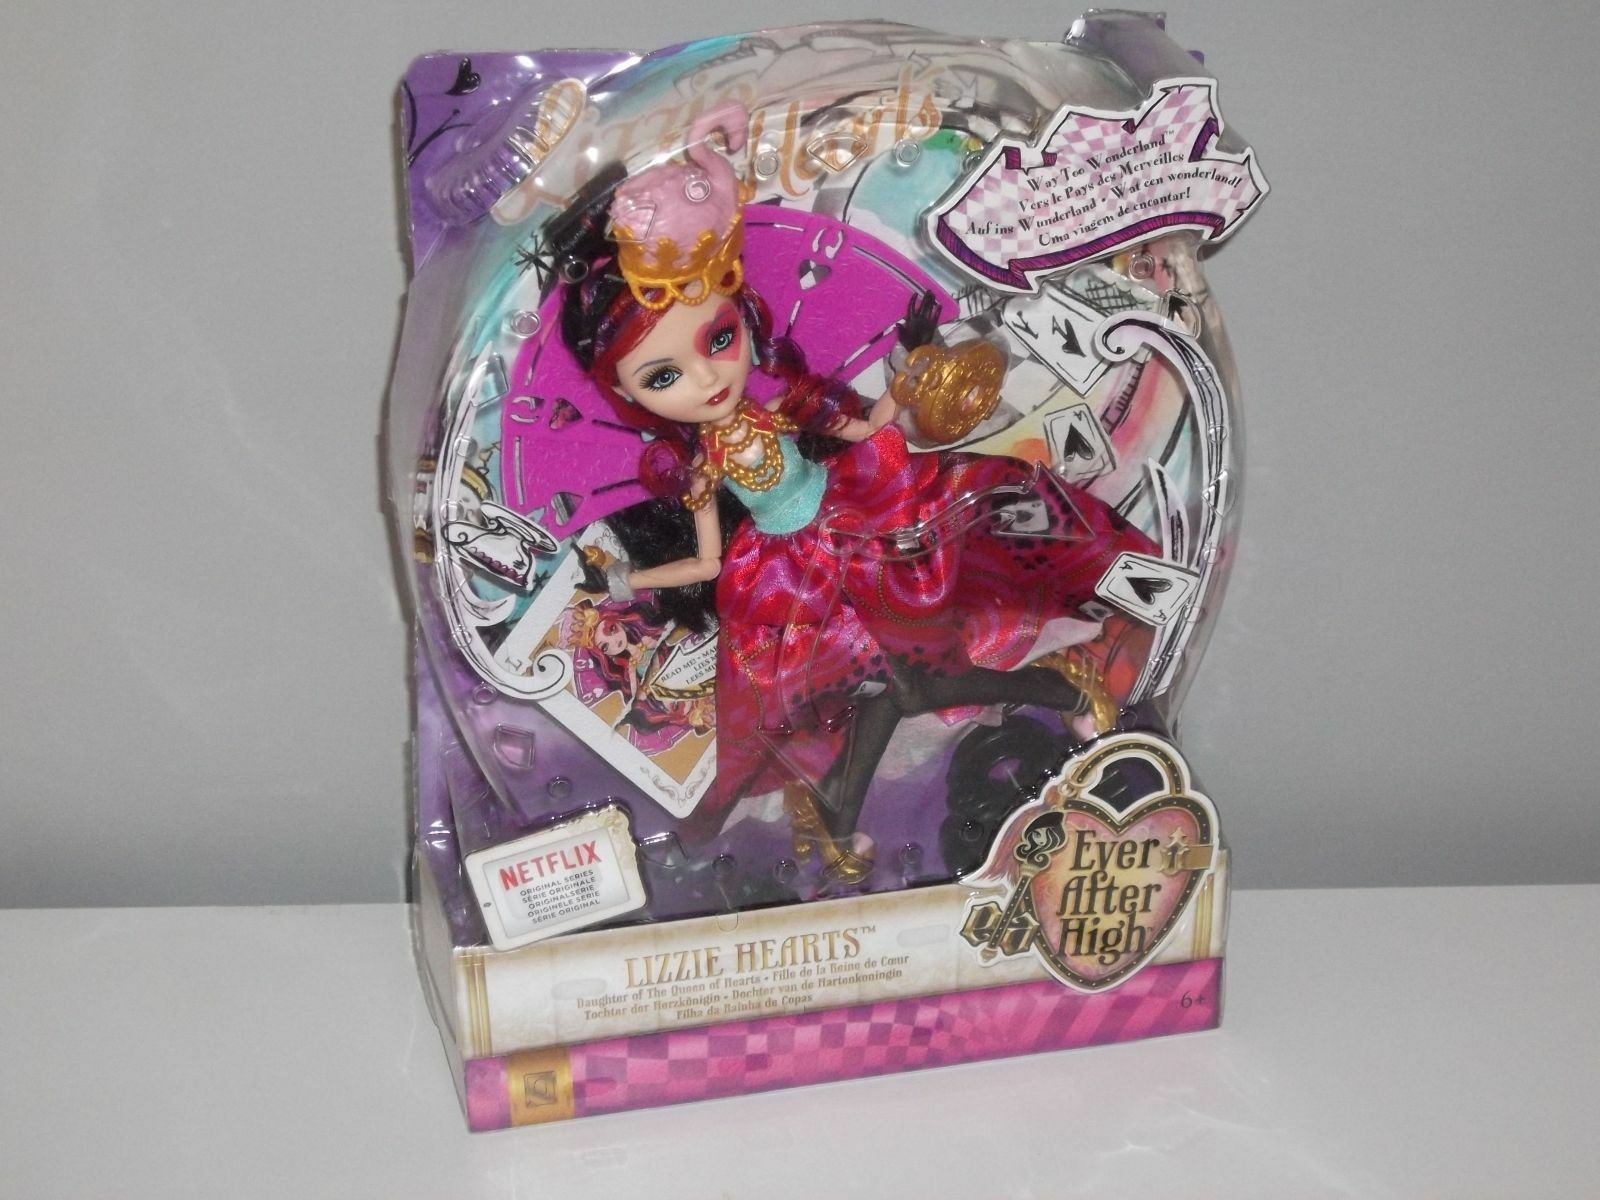 BAMBOLA EVER AFTER HIGH WAY TOO WONDERLAND WONDERLAND WONDERLAND NEW NEVER OPENED LIZZIE HEARTS d64f1e